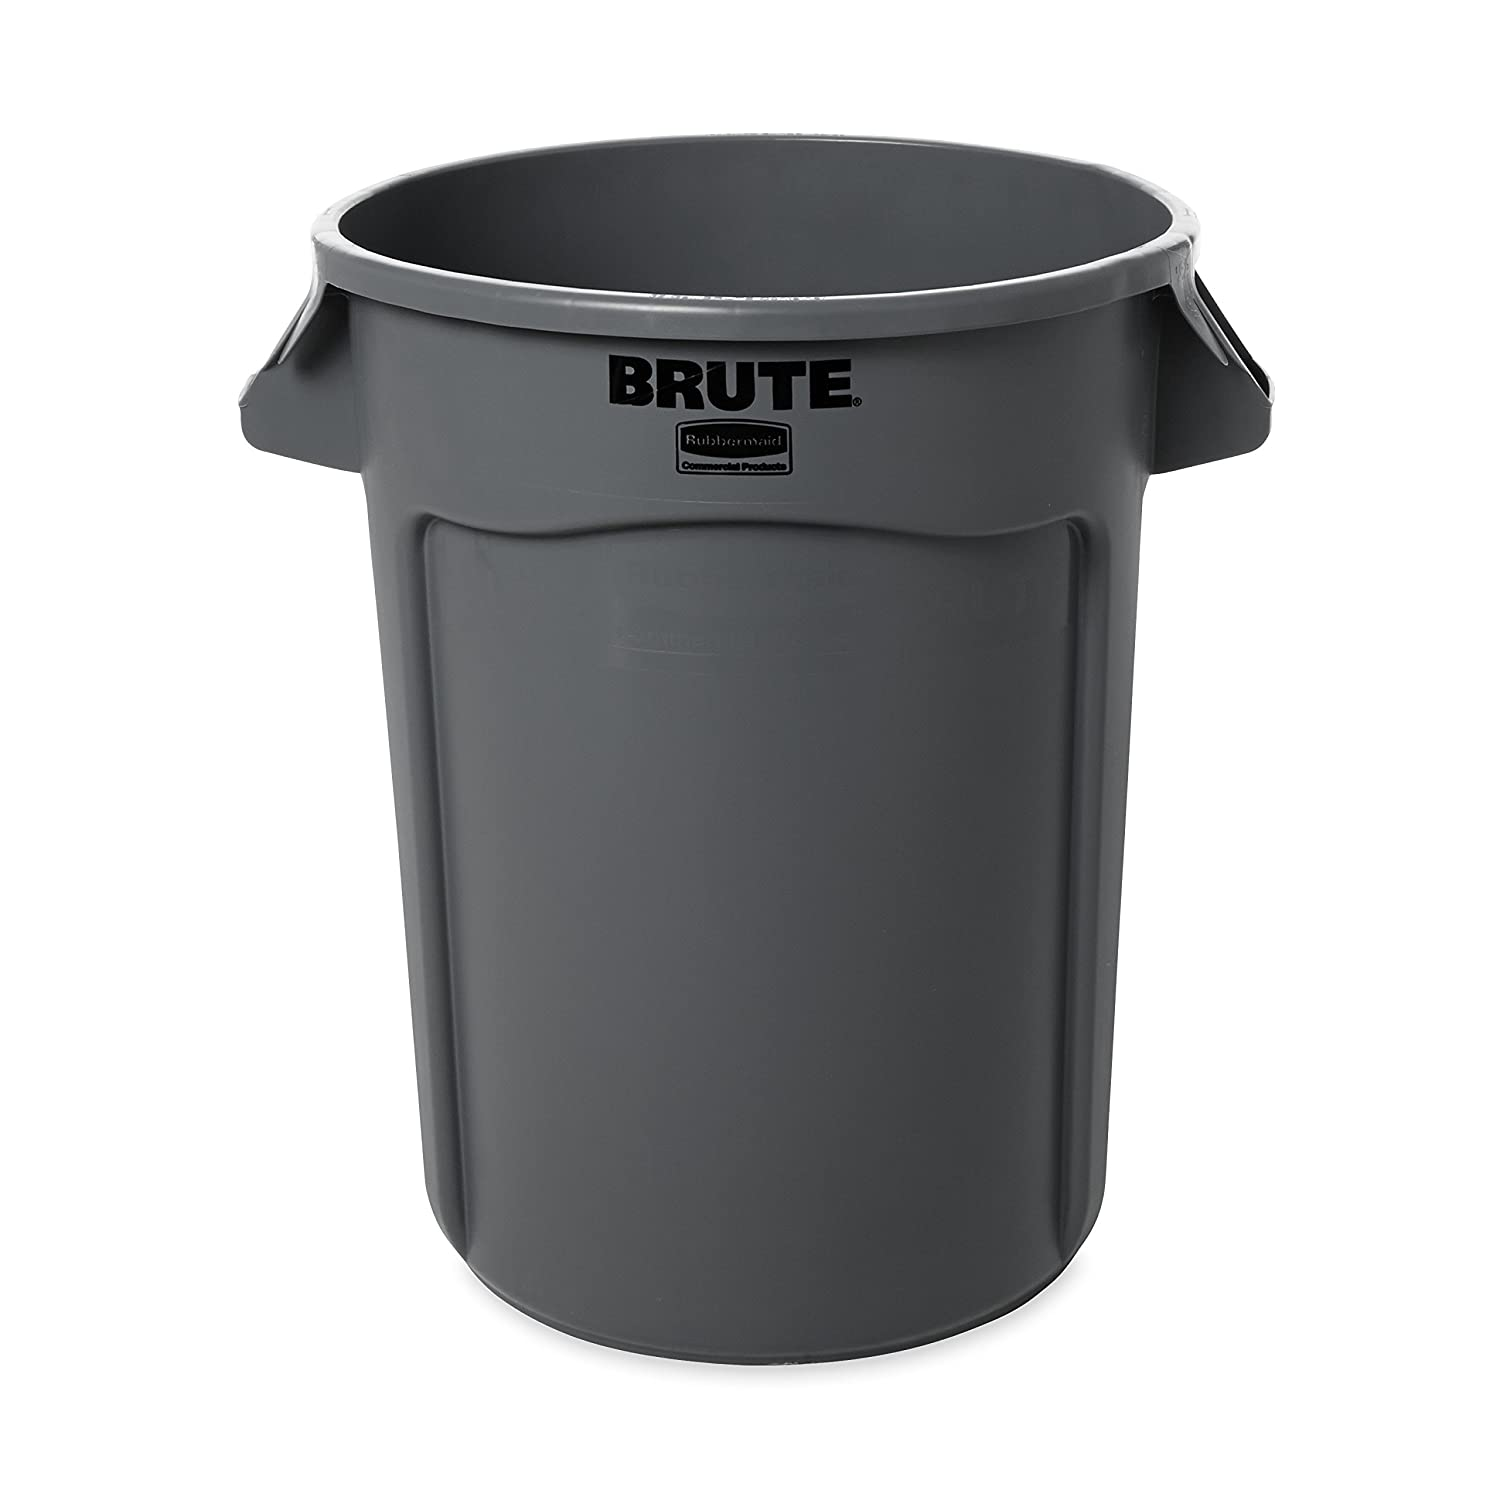 Rubbermaid Commercial Brute Round Container 75.7L - Blue FG262000BLUE RUB262000GRA